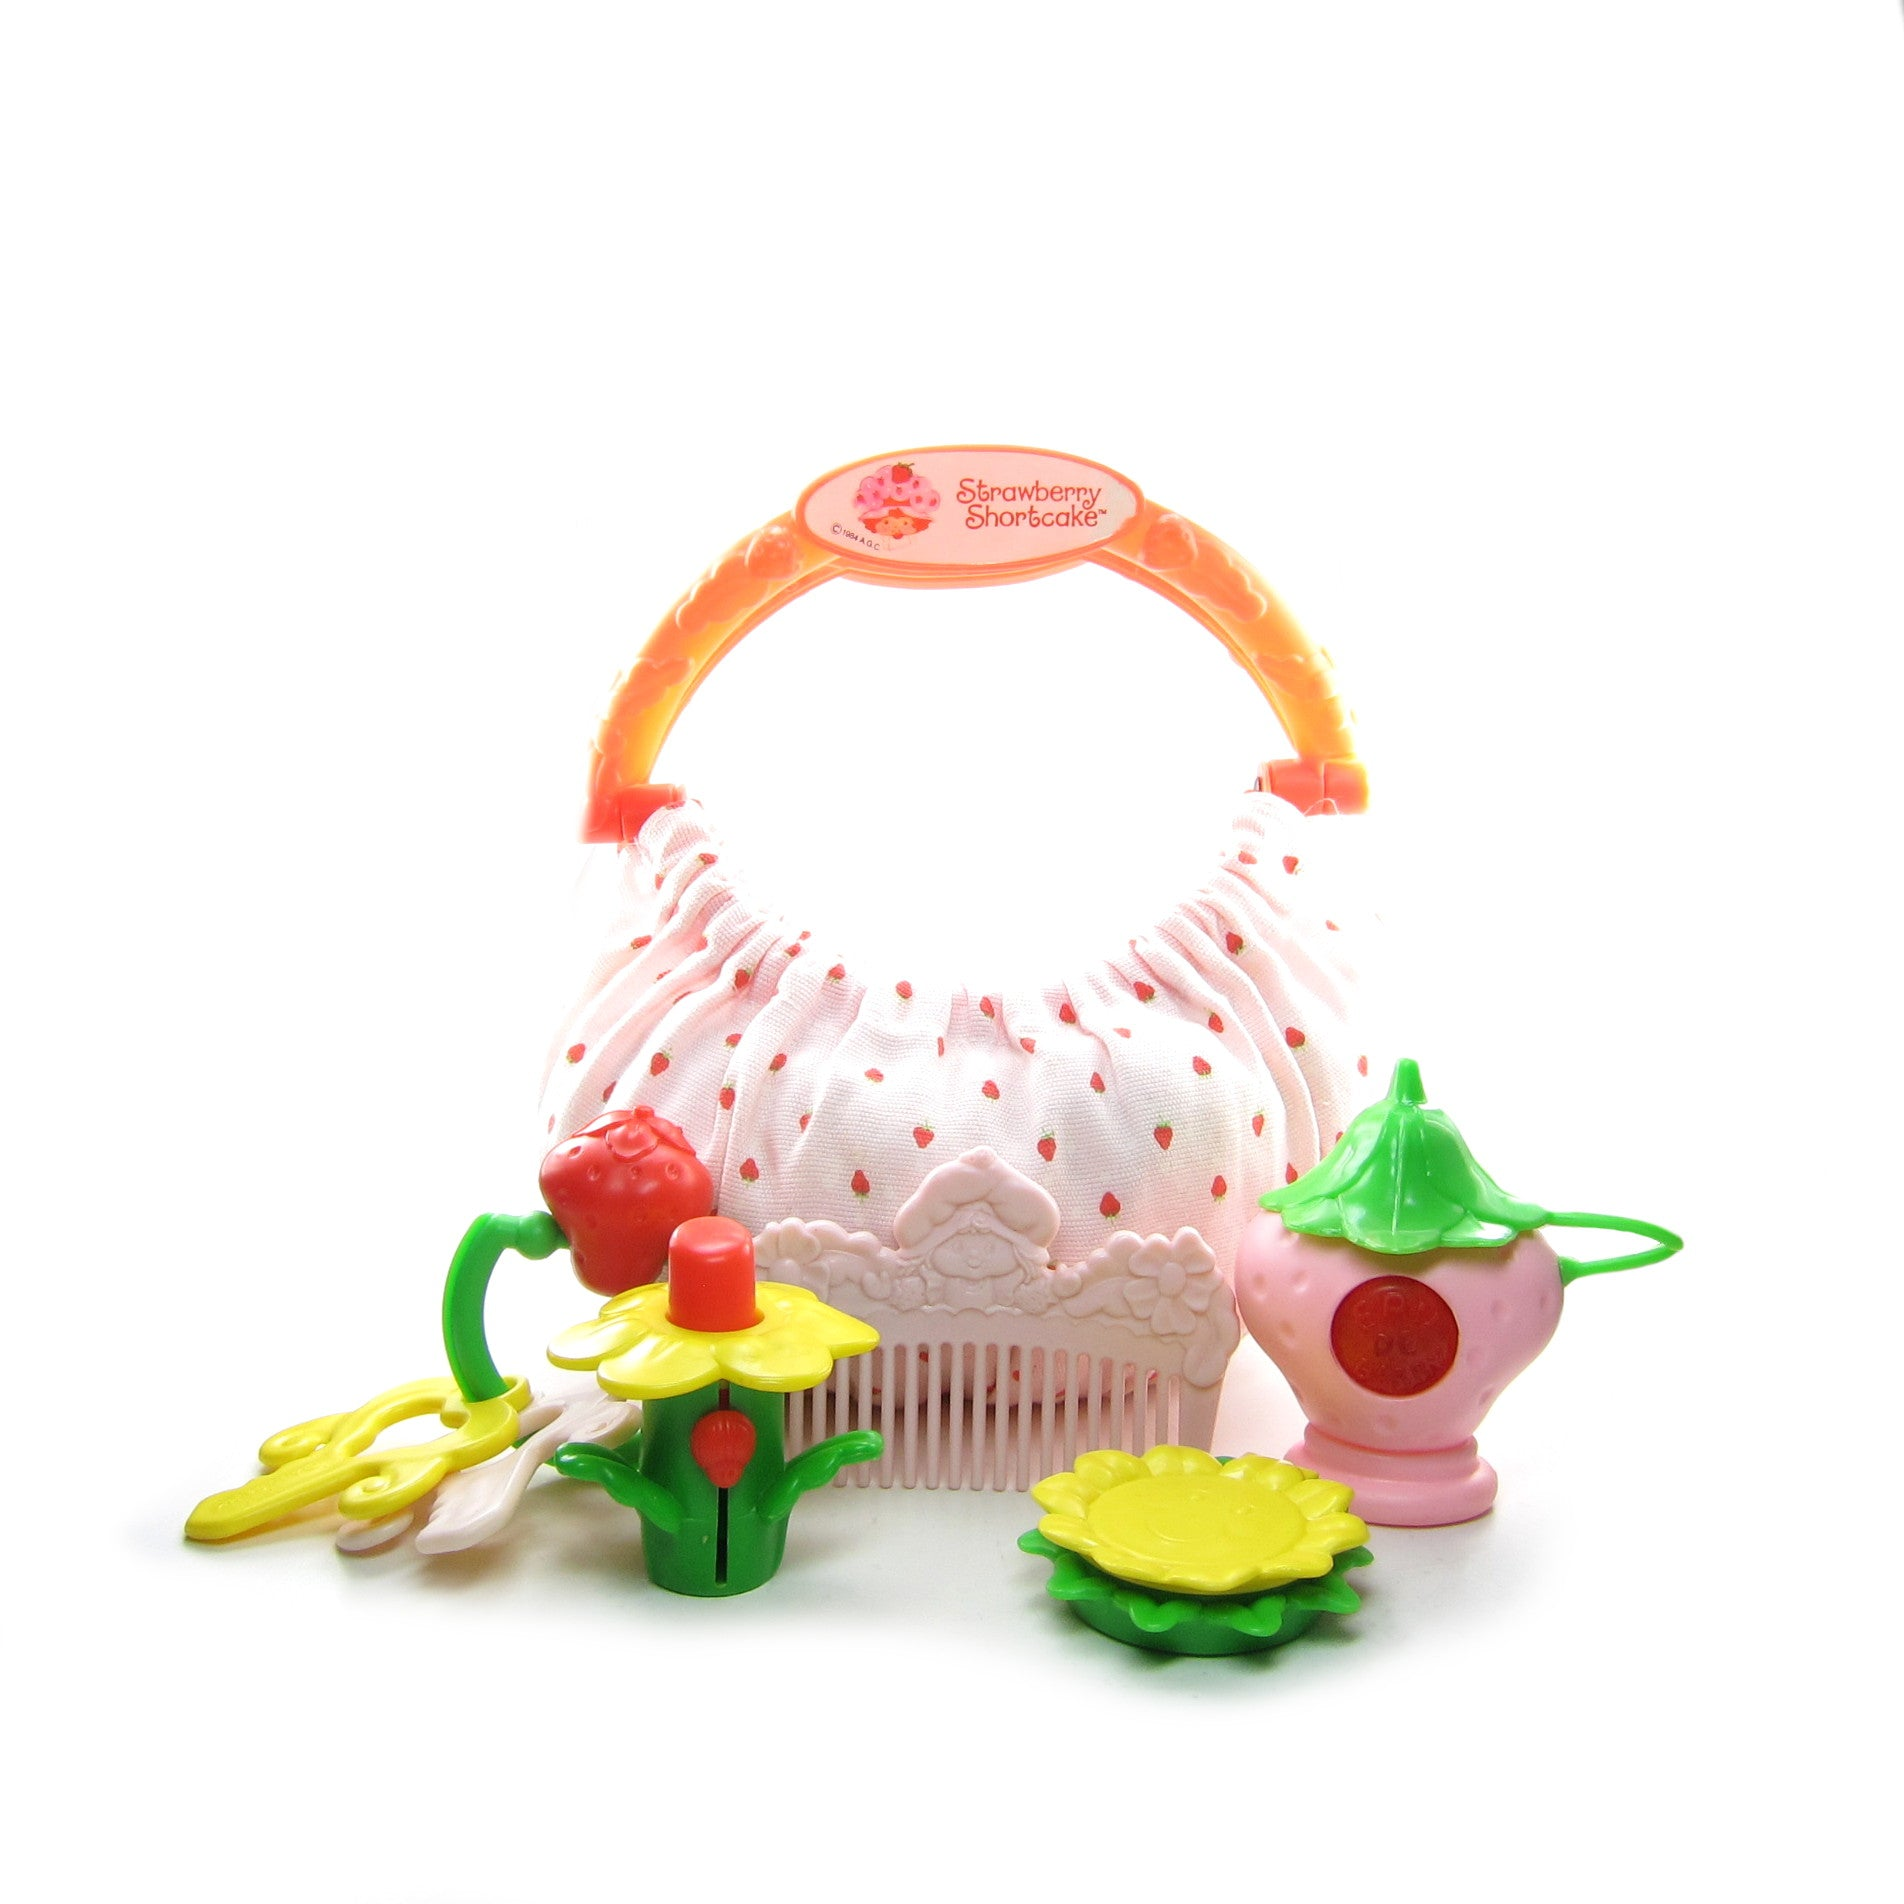 Berry Grown Up Purse Strawberry Shortcake preschool toy